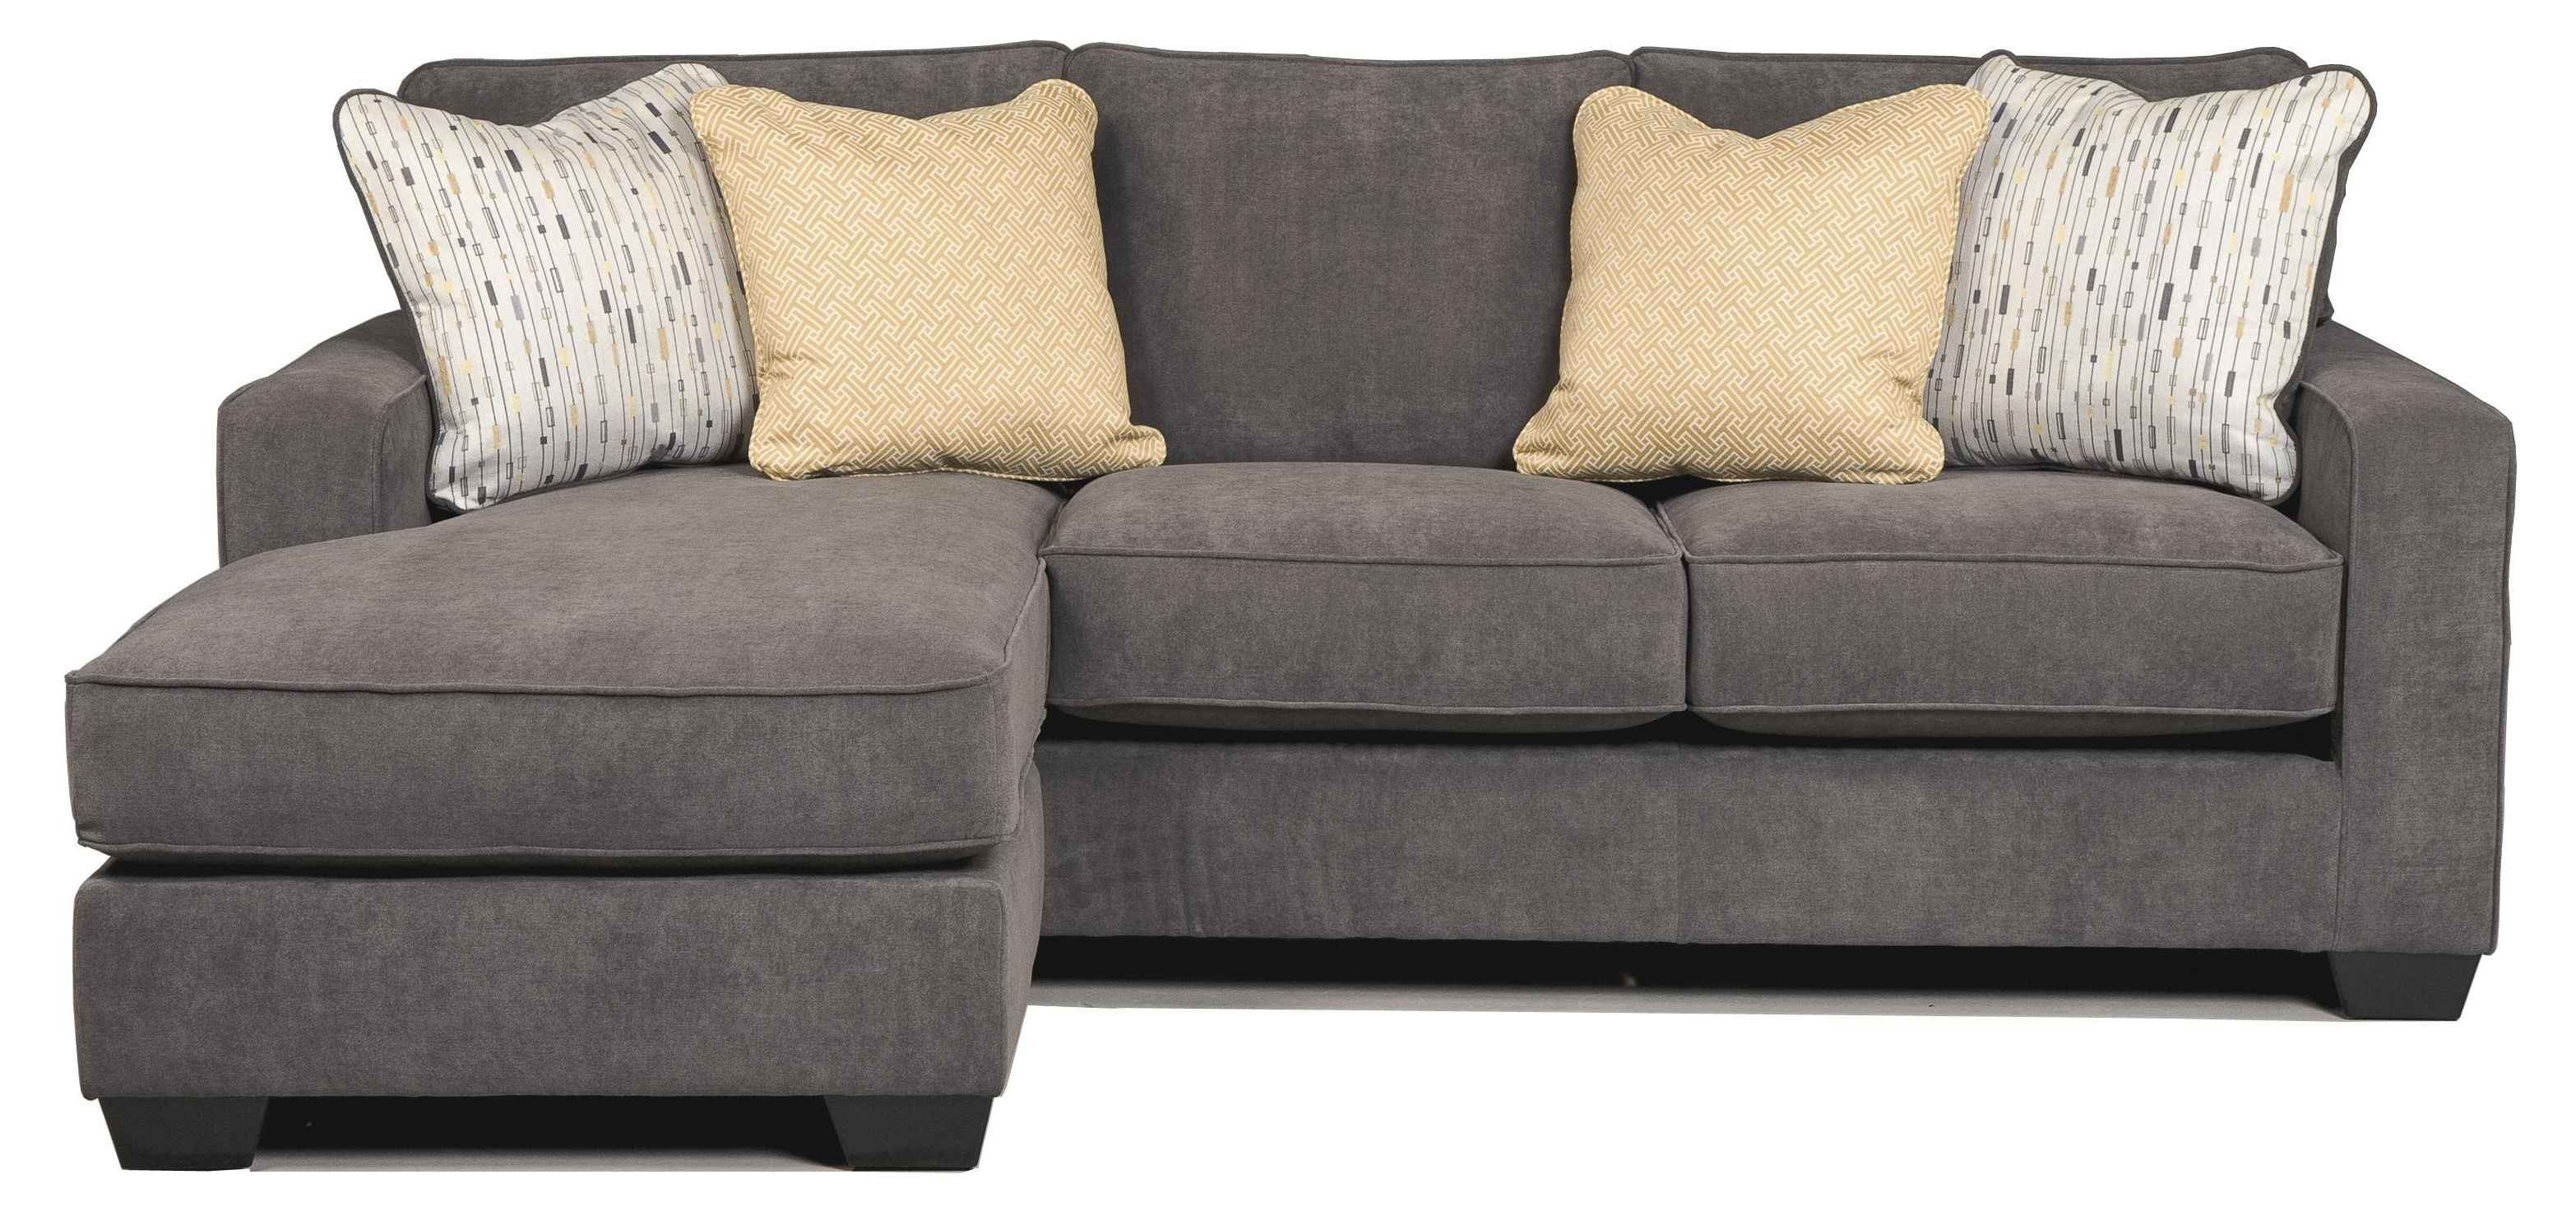 Signature Designashley Hodan – Marble Contemporary Sofa Chaise With Well Known Clarksville Tn Sectional Sofas (View 16 of 20)